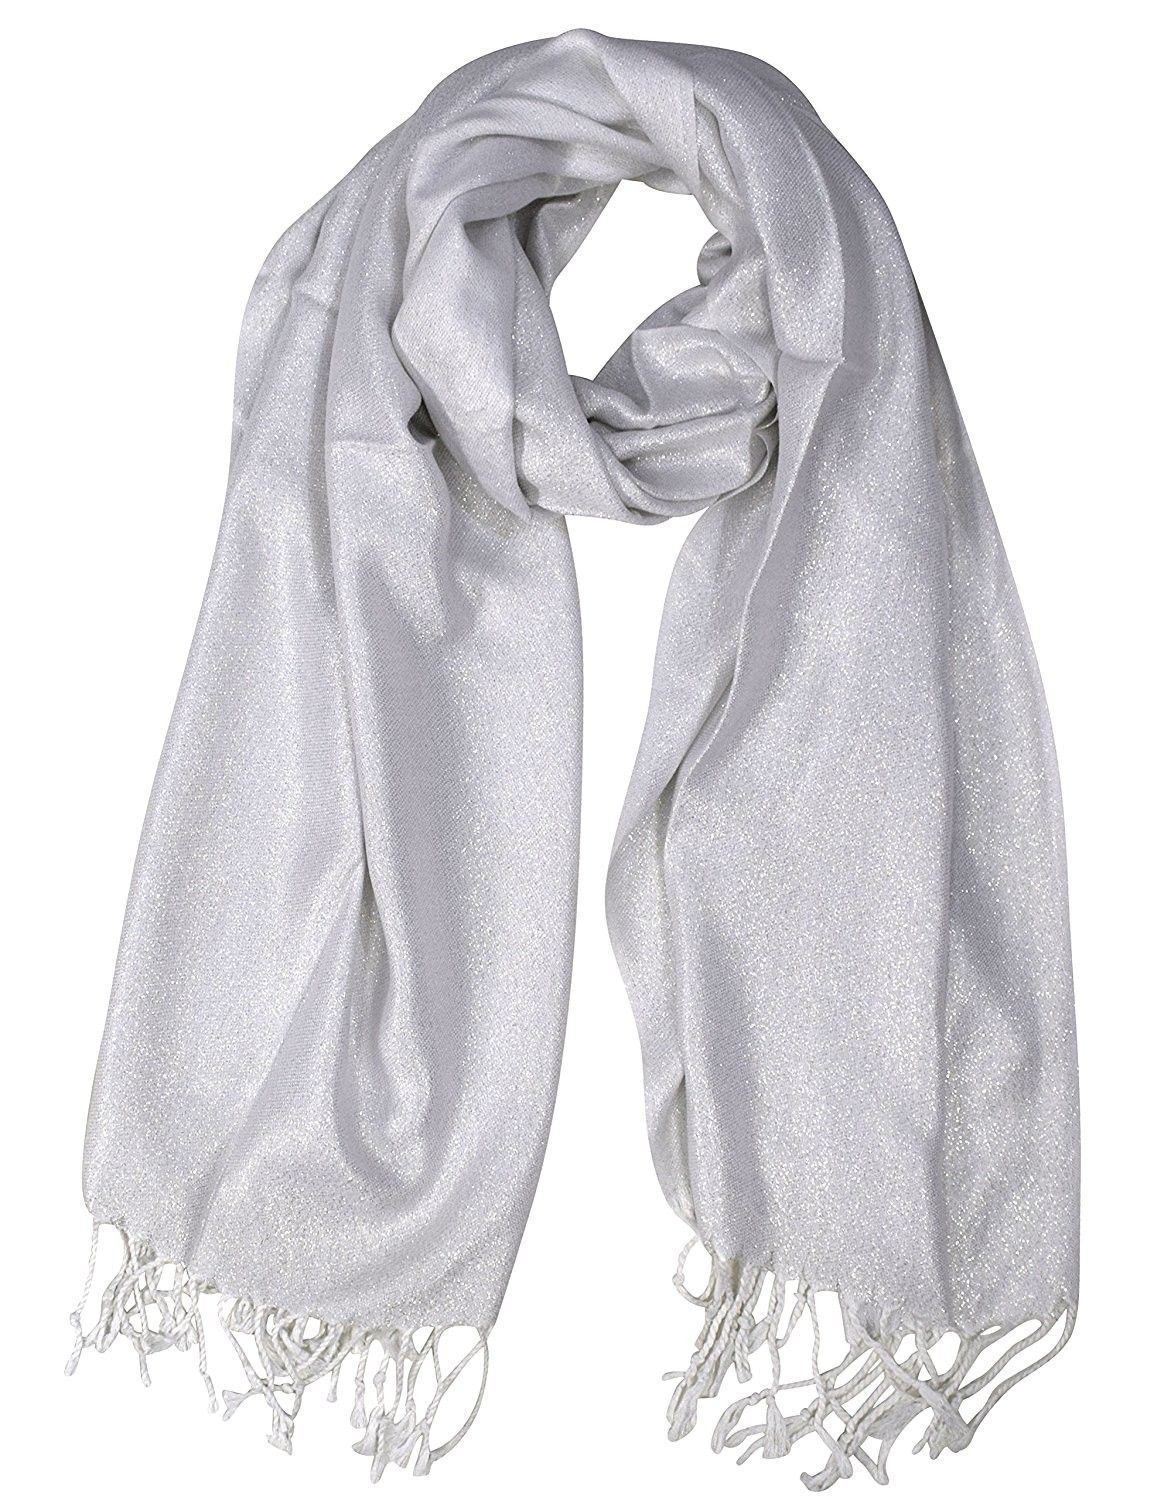 8a72c757f61 Princess Shimmer Scarf Pashmina Shawl with Fringes - White ...